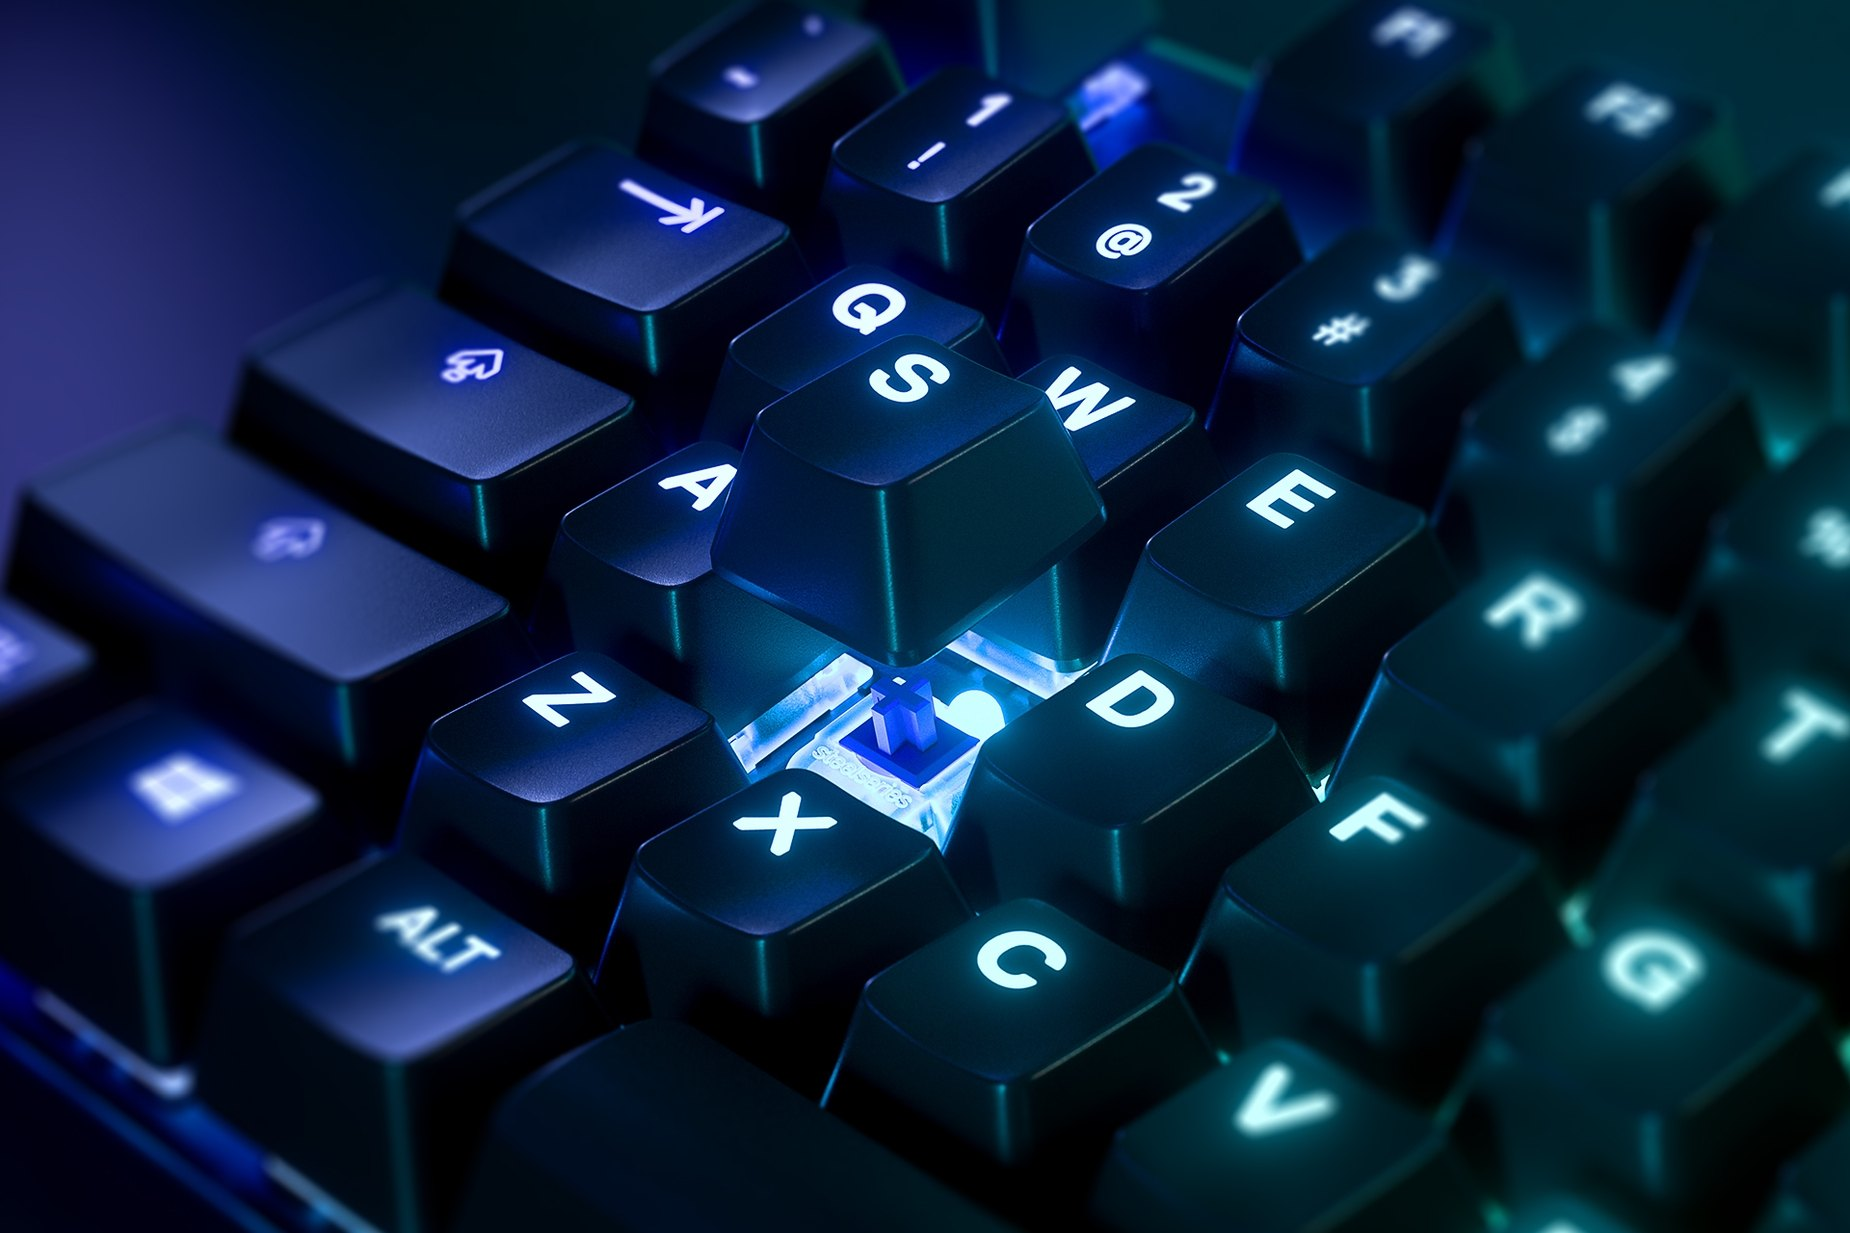 Zoomed in view of a single key on the French - Apex 7 (Blue Switch) gaming keyboard, the key is raised up to show the SteelSeries QX2 Mechanical RGB Switch underneath